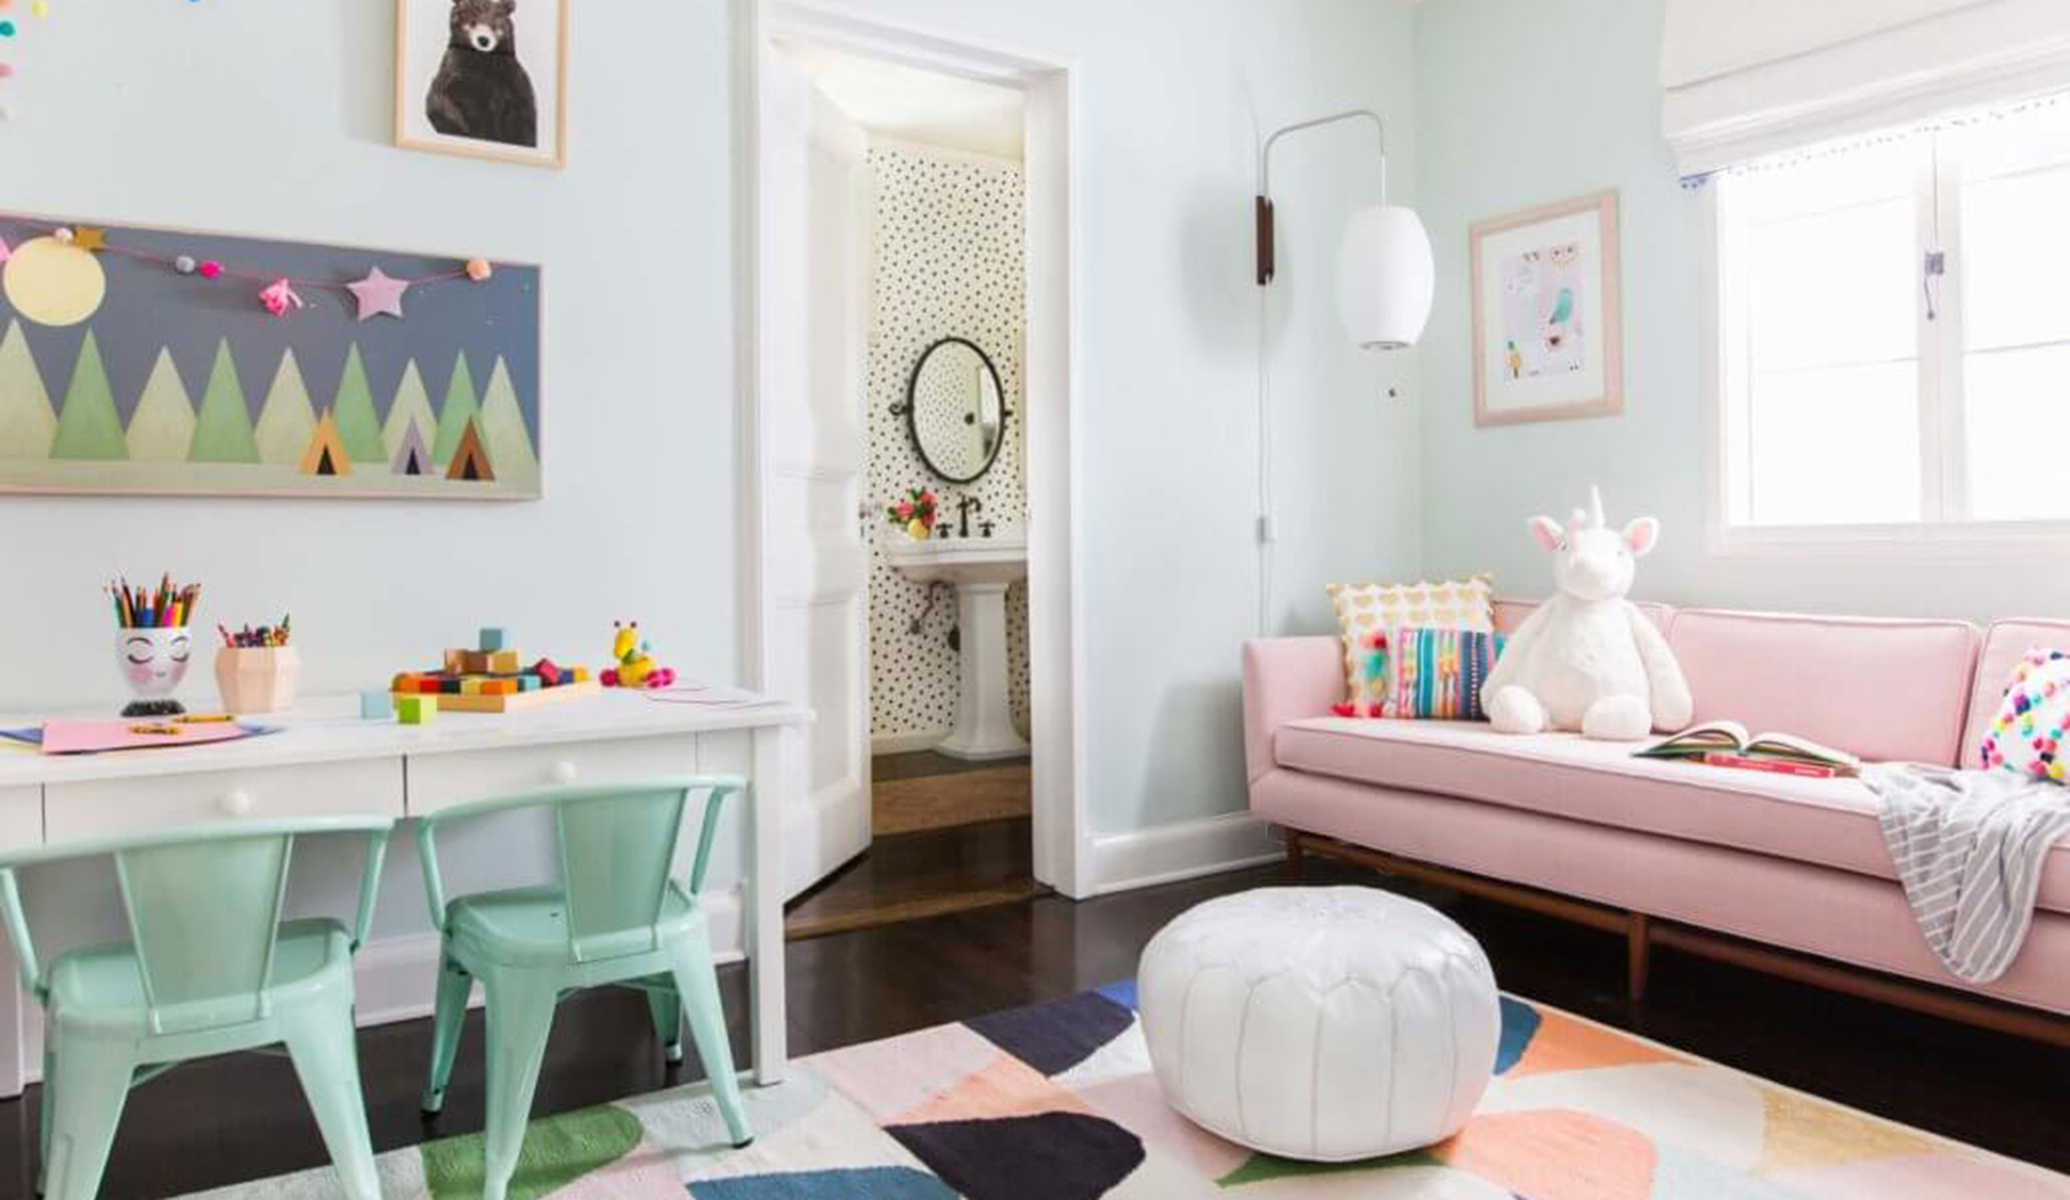 01_Ginny_Macdonald_Full-Design_Girls-Playroom_Whimsical_Pink_Playful_Featured Image_071718